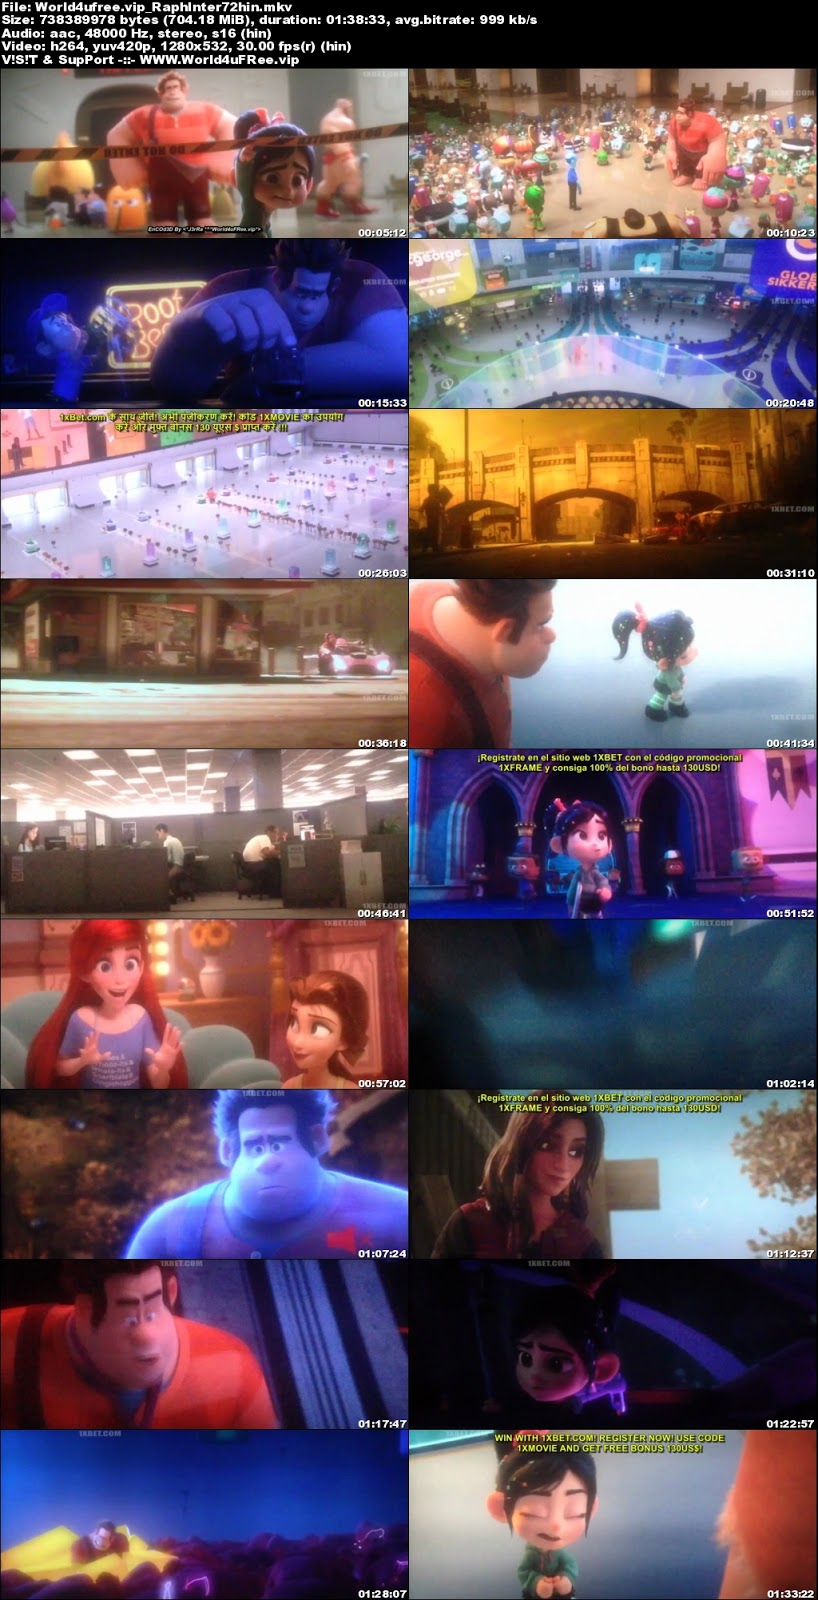 Ralph Breaks the Internet 2018 Hindi Dubbed 720p HDCAM 700Mb x264 world4ufree.vip, hollywood movie Ralph Breaks the Internet 2018 hindi dubbed dual audio hindi english languages original audio 720p BRRip hdrip free download 700mb movies download or watch online at world4ufree.vip